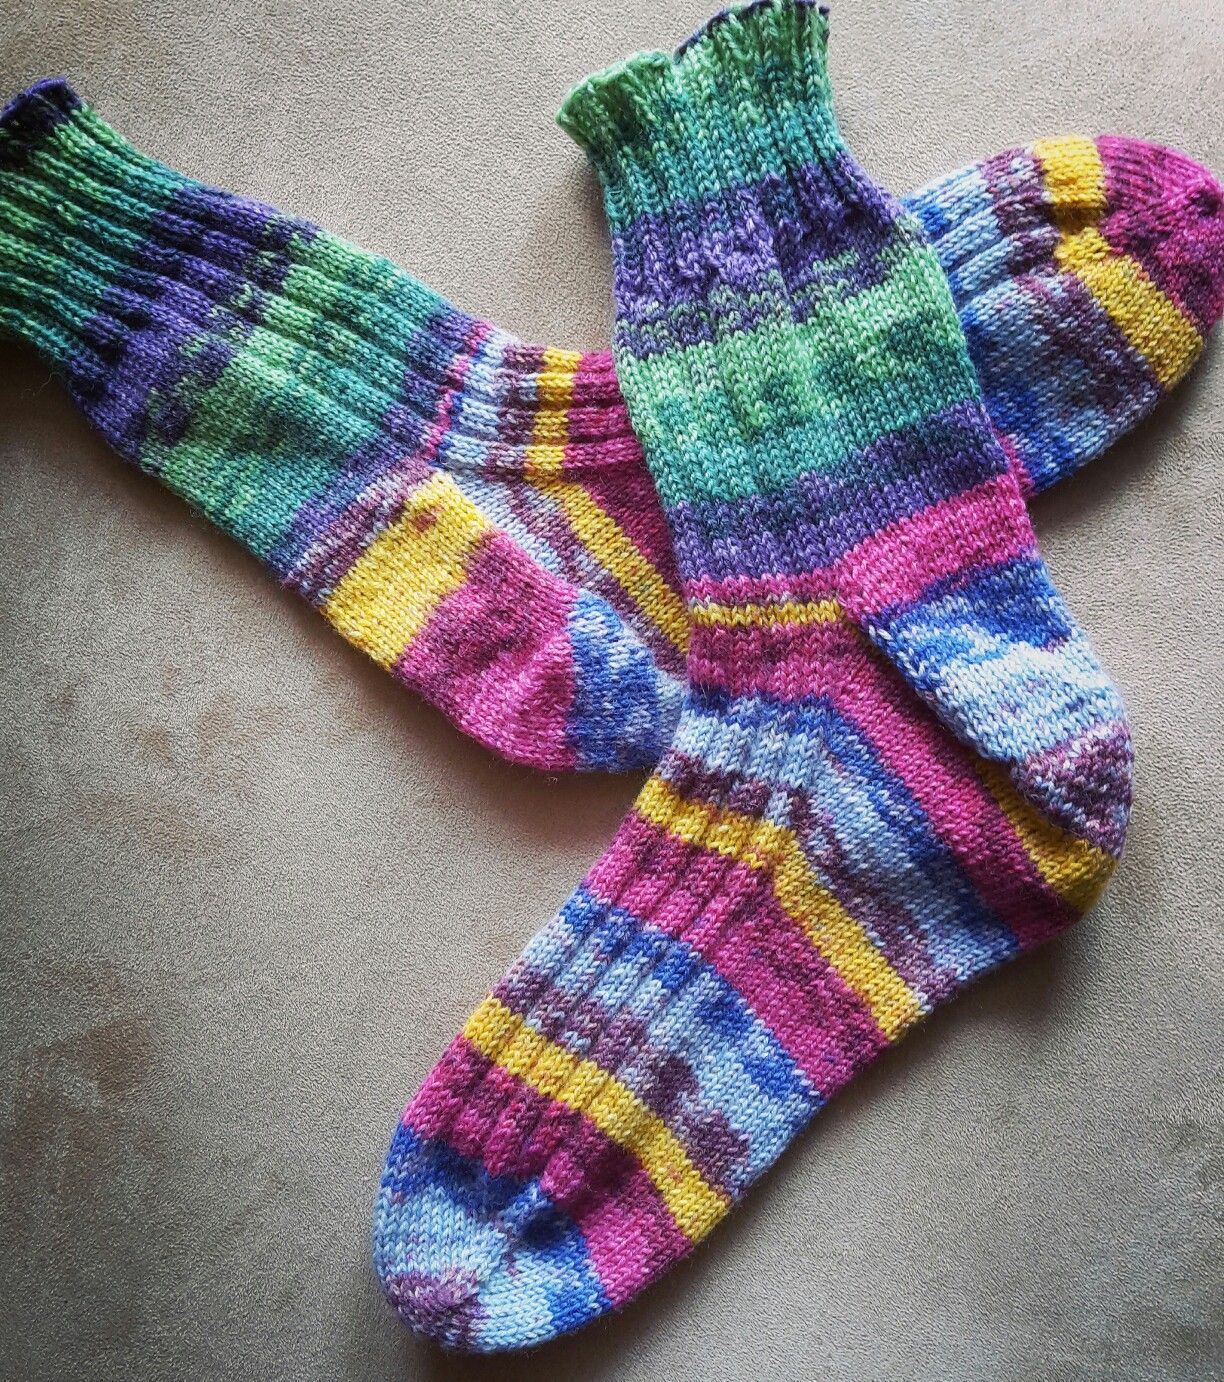 How To Knit Toe Up Socks Video With Step By Step Instructions For